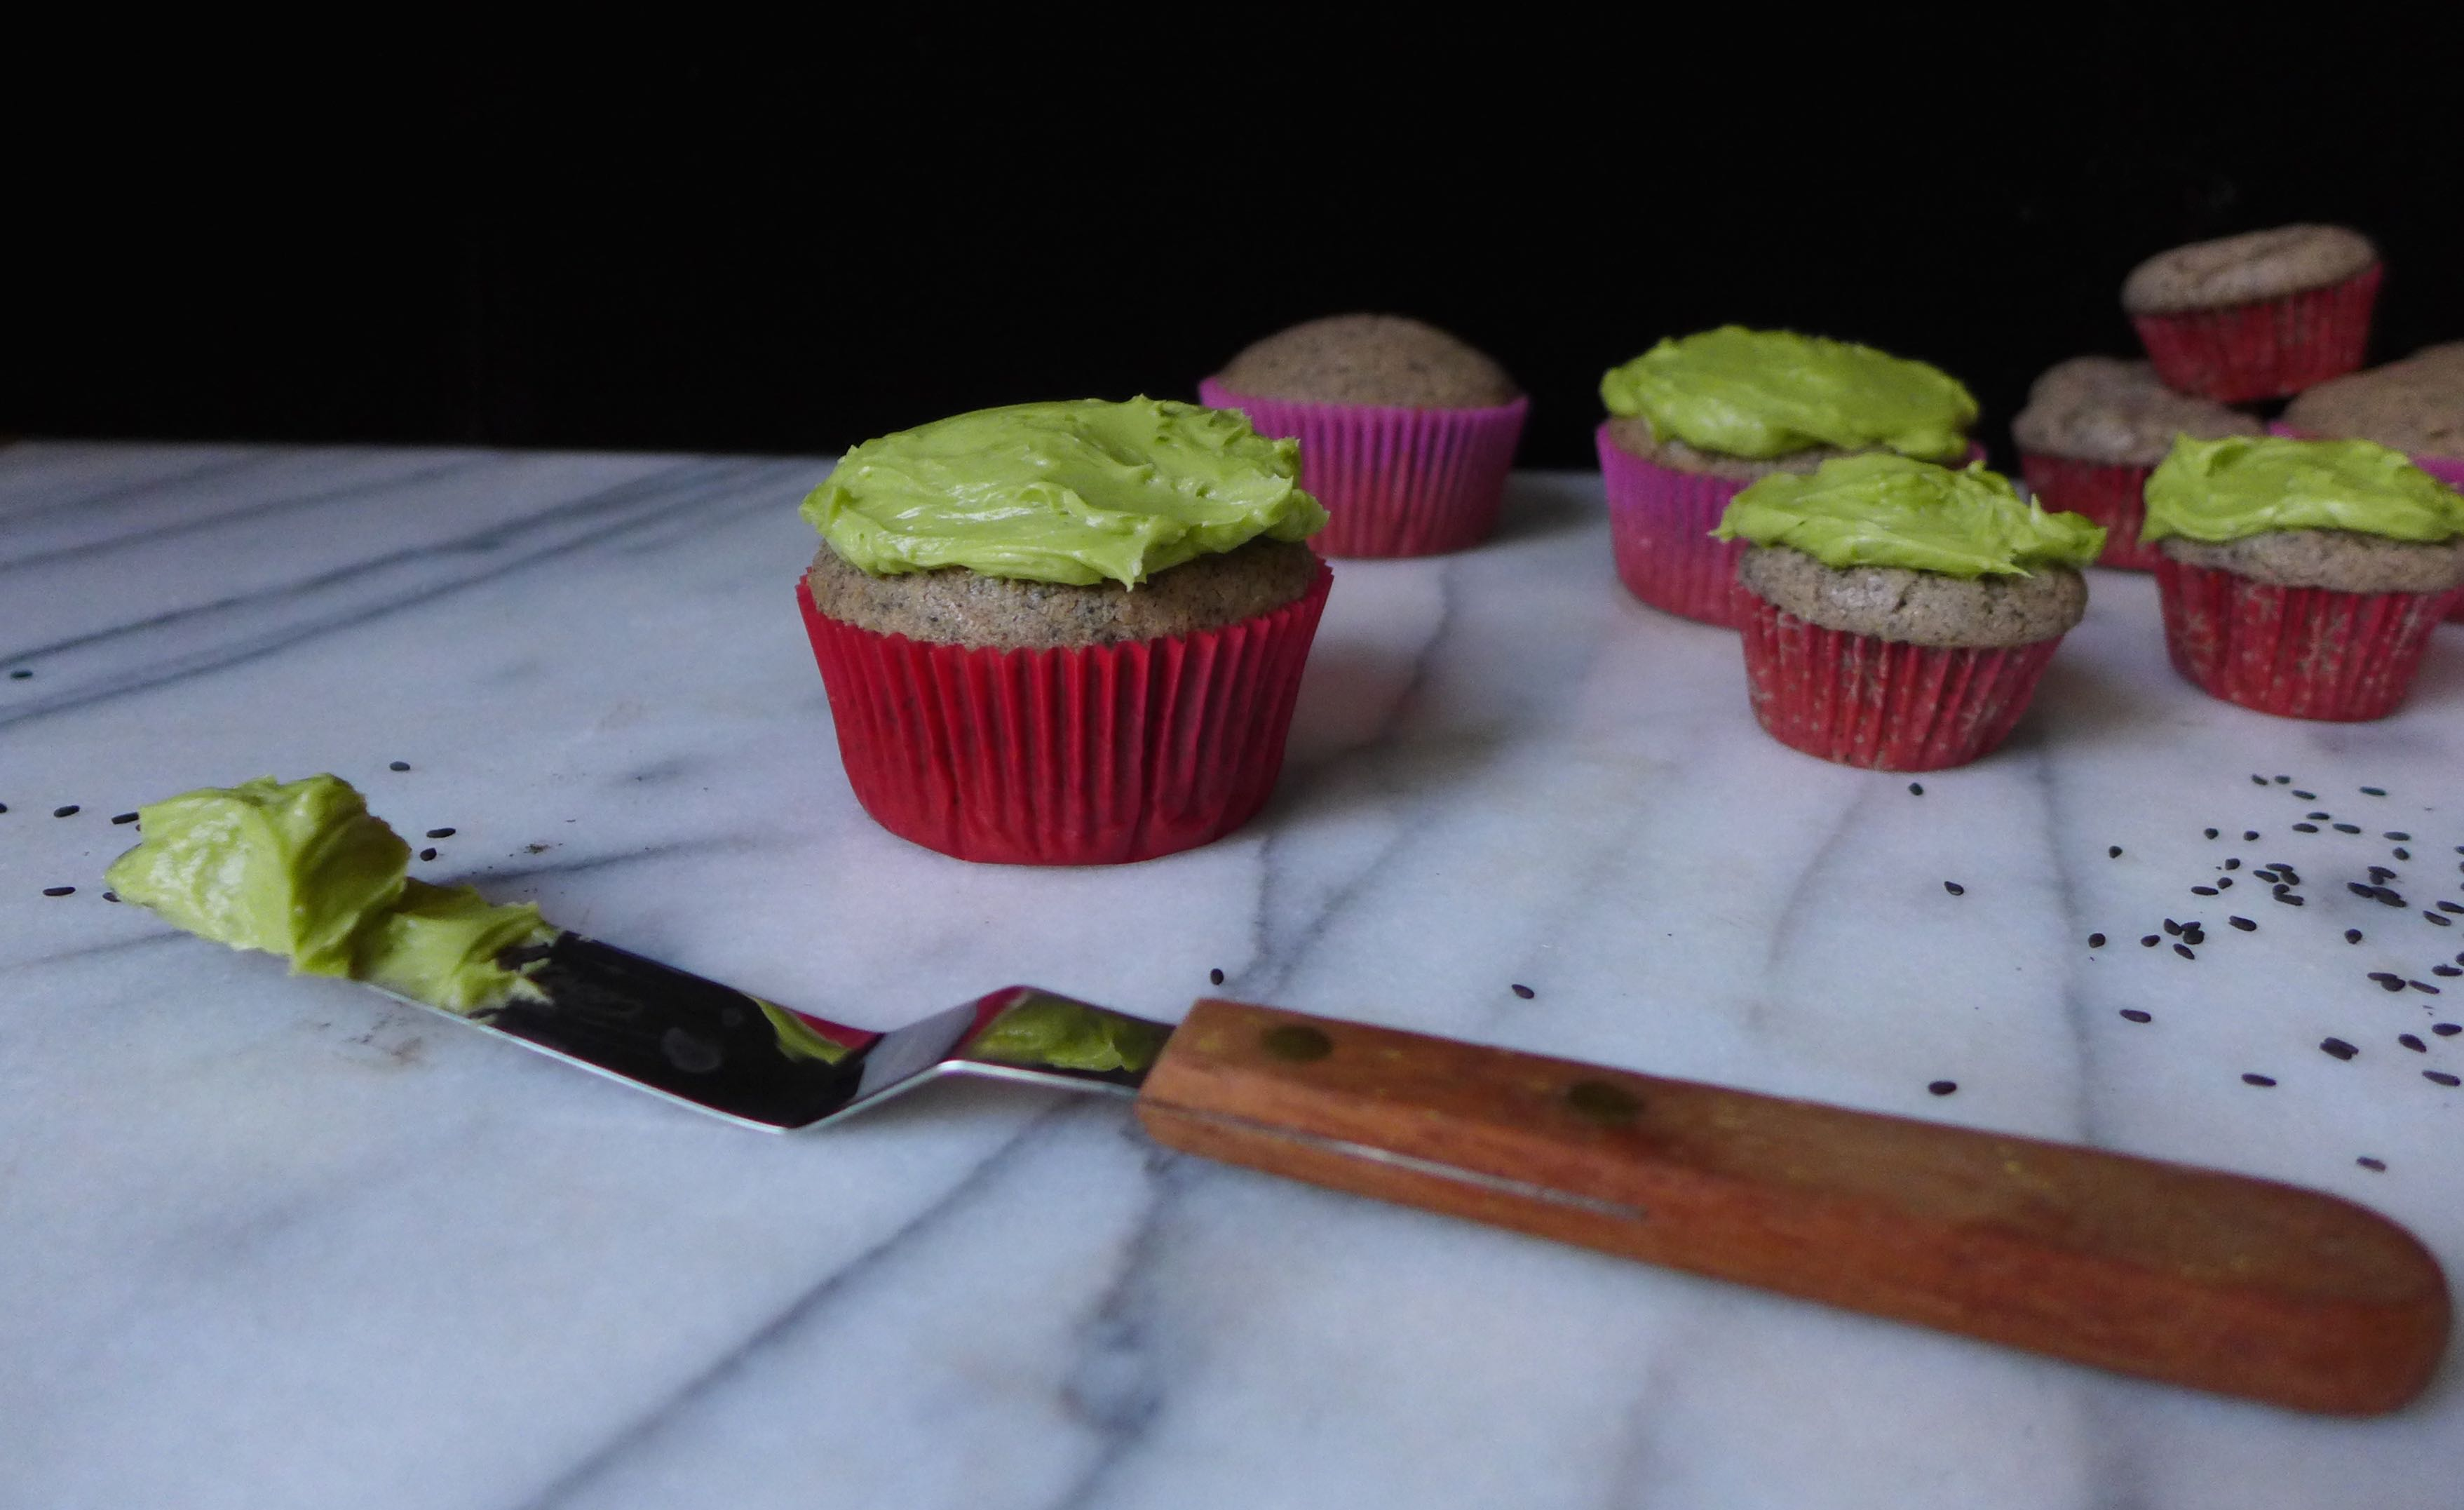 Black Sesame Cupcakes with Matcha Frosting